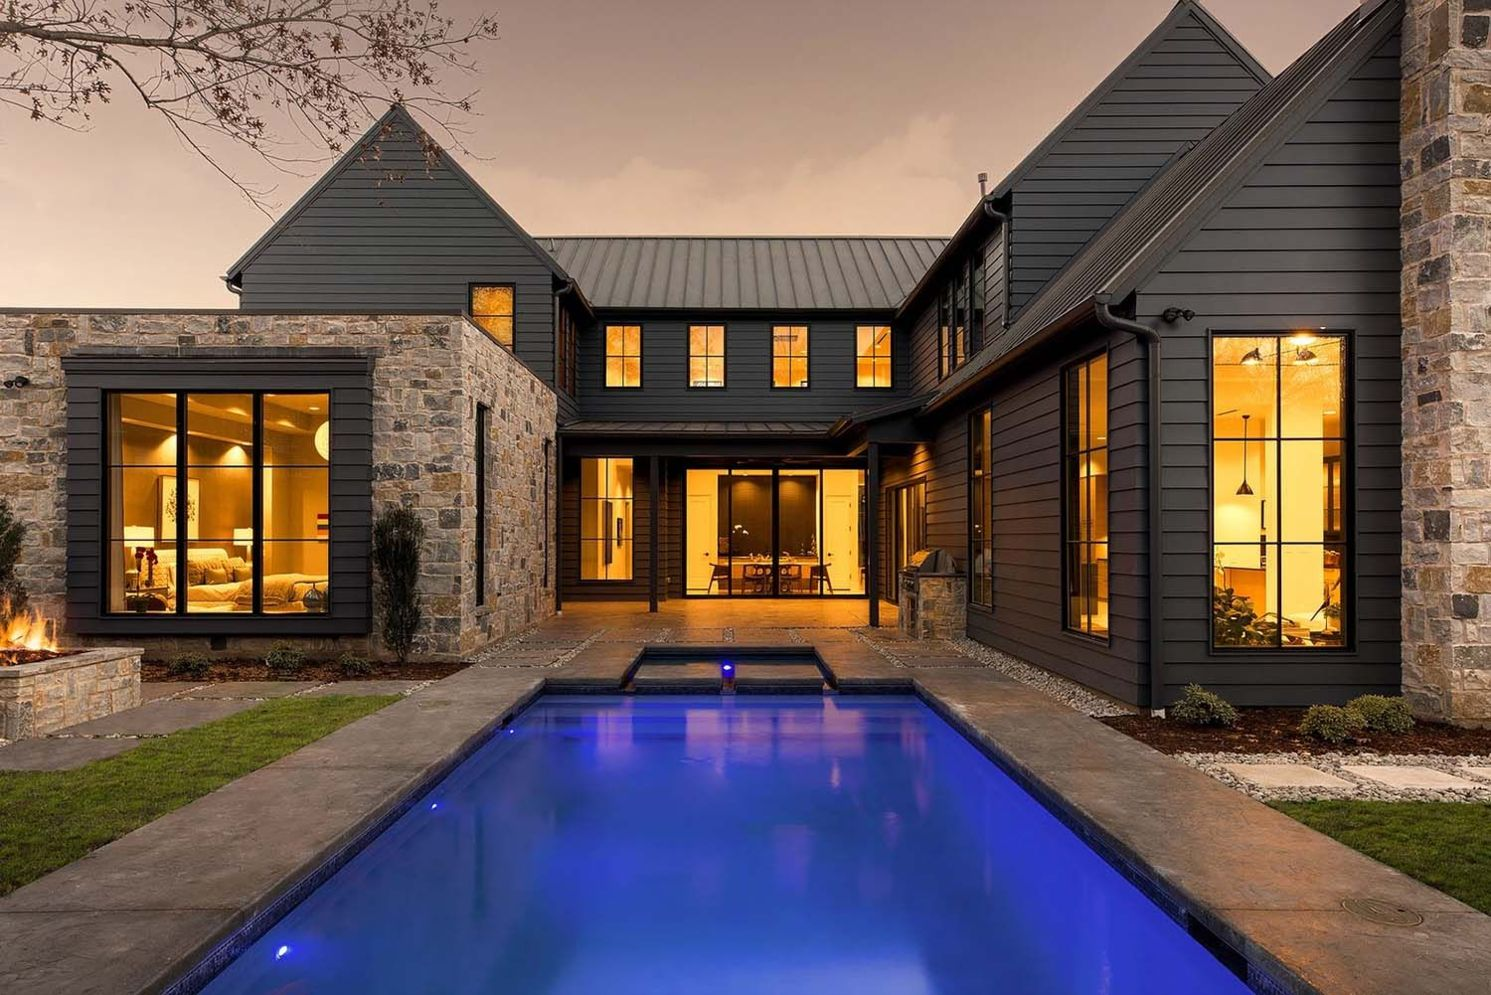 Modern house with new farmhouse exterior design pulling out country charm and warm welcoming display Image 44